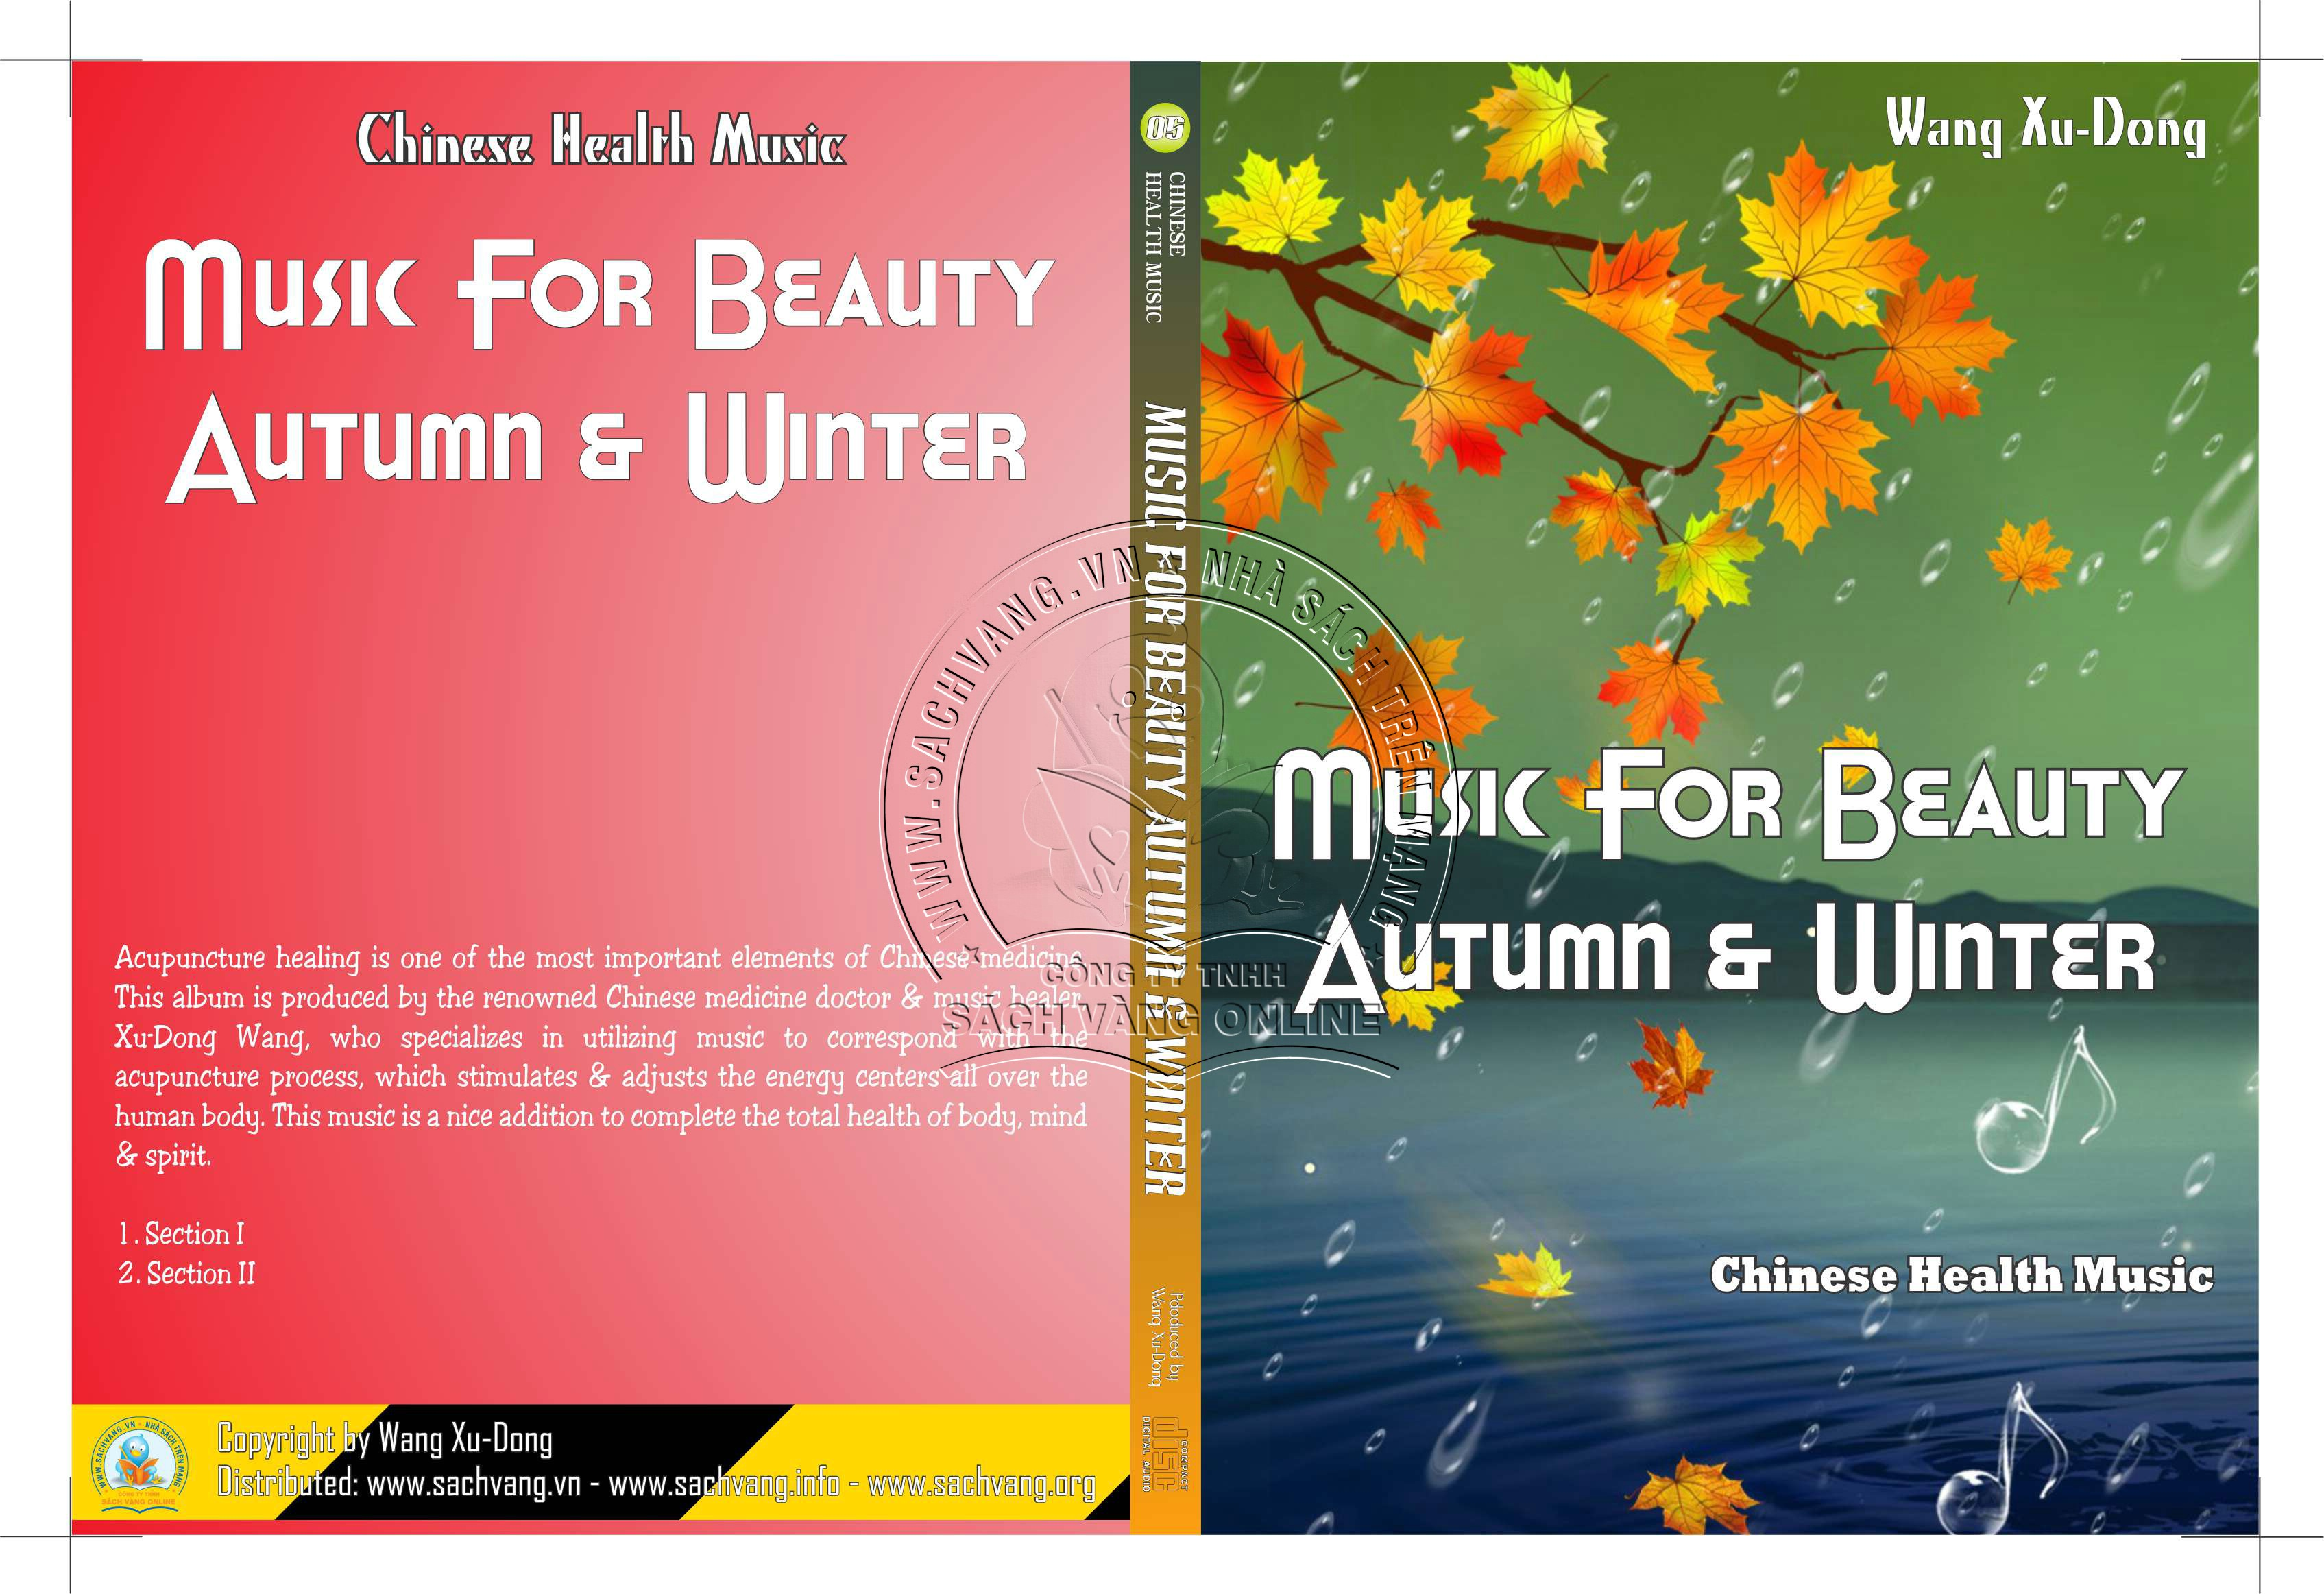 Chinese Health Music - 05 - Music for Beauty Autumn and Winter